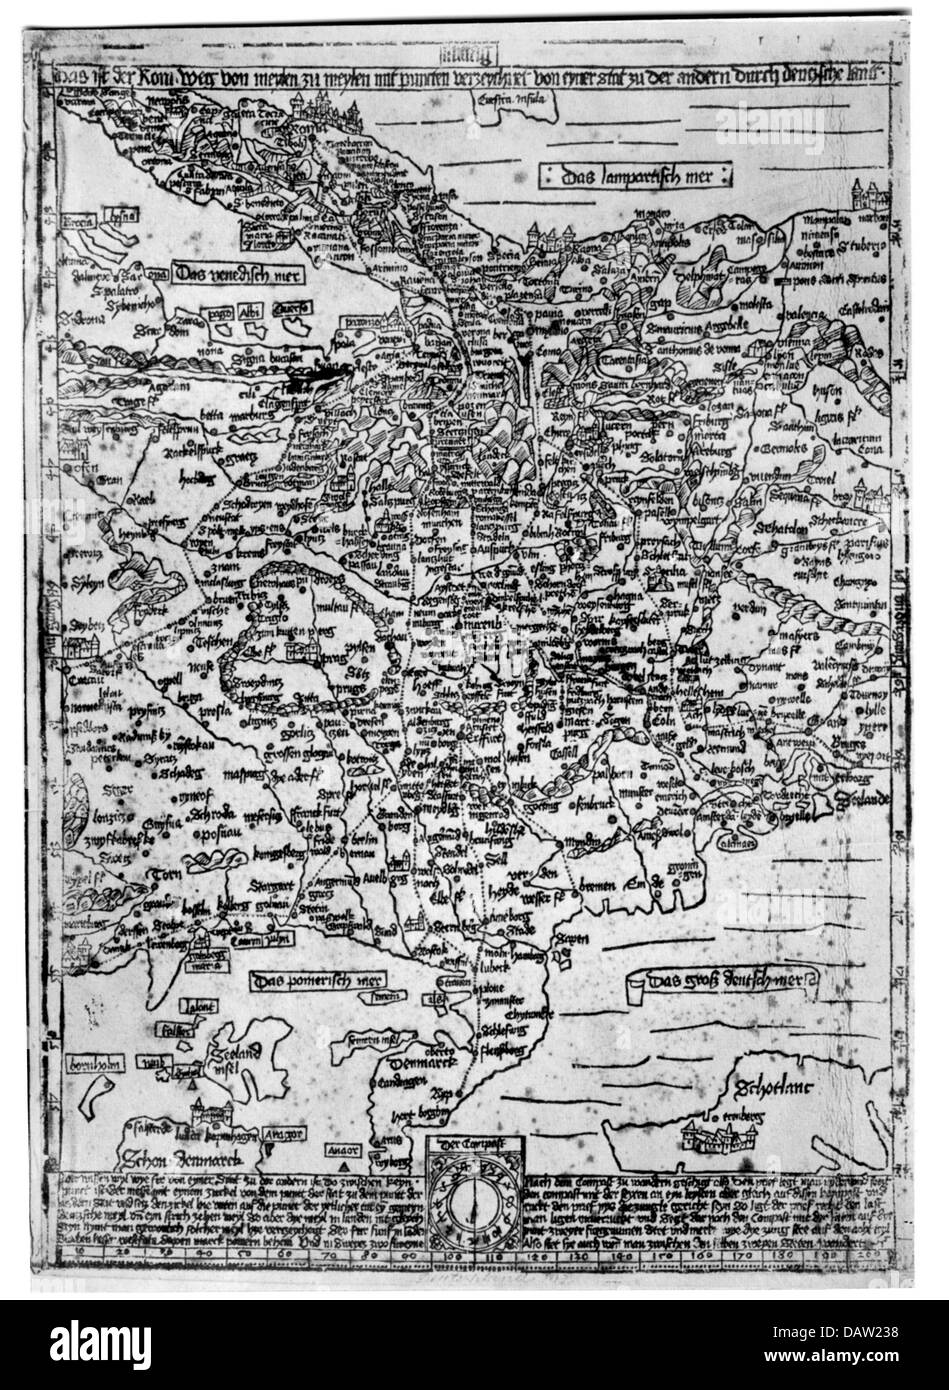 cartography, map, Middle Ages, Central Europe, 'The Way to Rome' by Erhard Etzlaub, woodcut, Nuremberg, - Stock Image